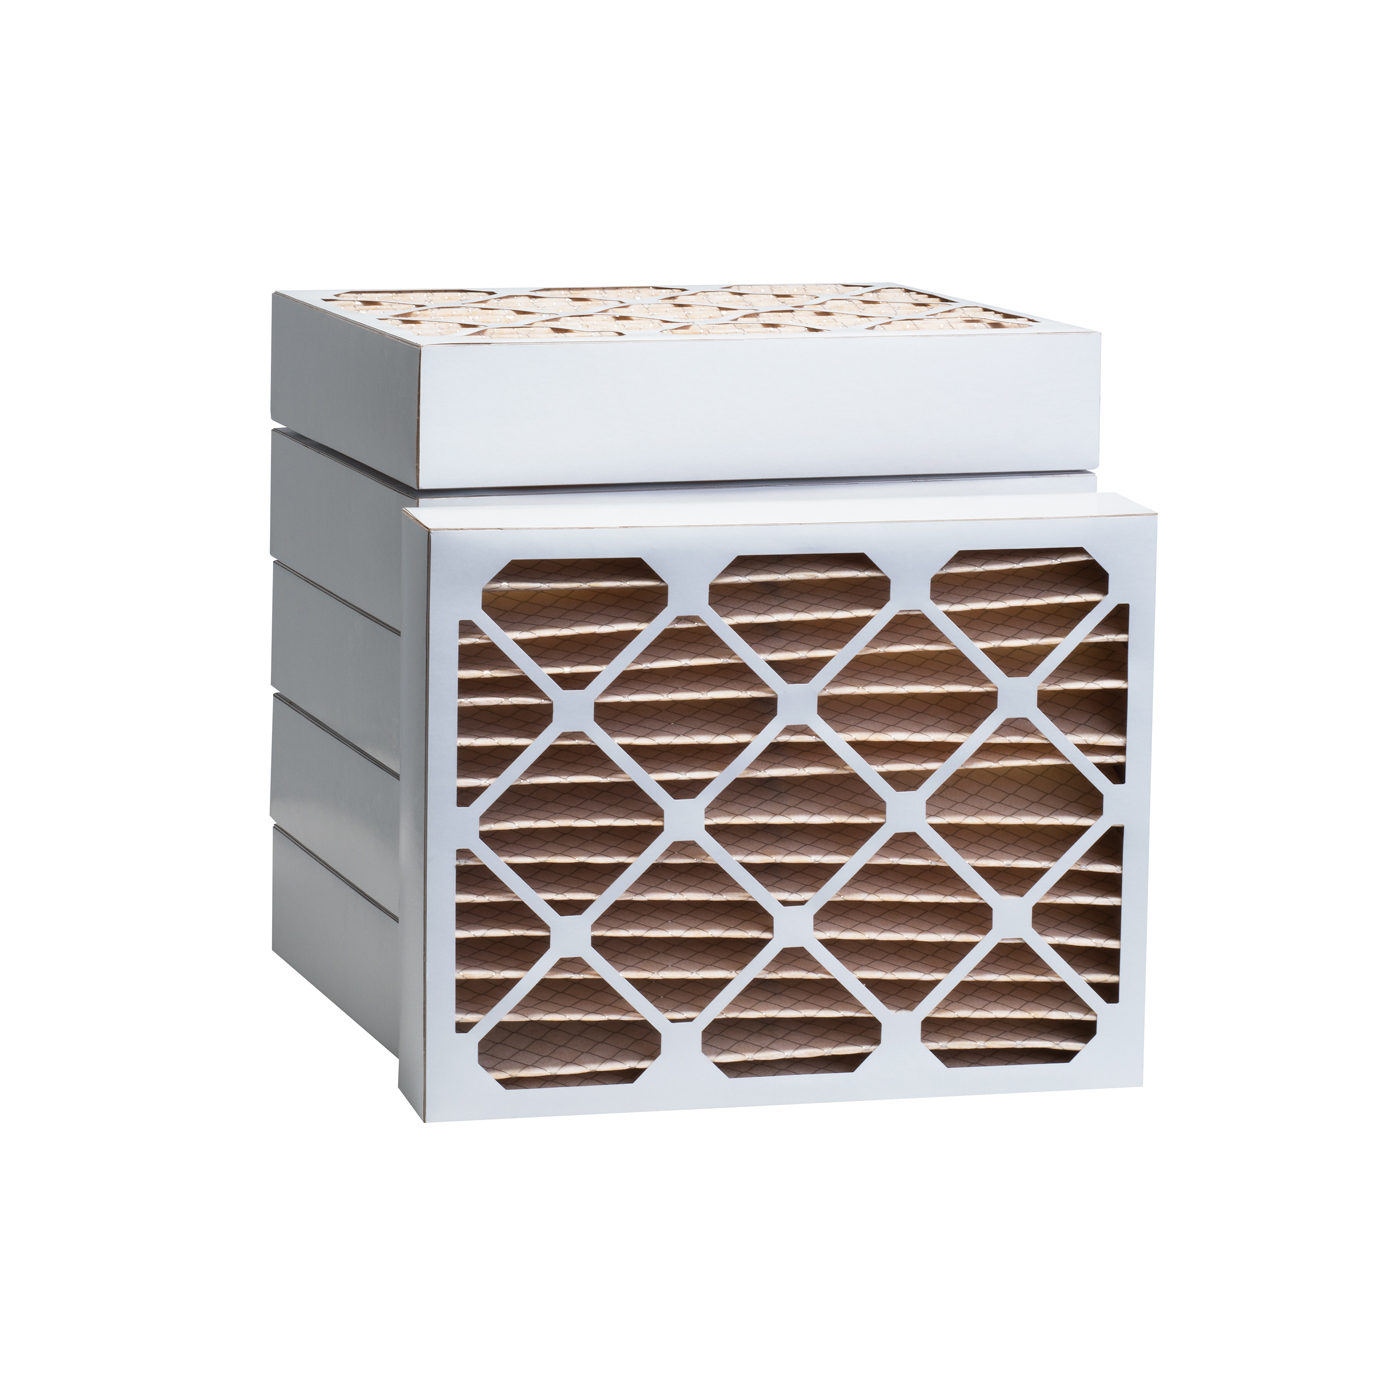 Tier1 20 x 22-1/4 x 4  MERV 11 - 6 Pack Air Filters (P15S-642022D) TIER1_P15S_642022D_6_PACK